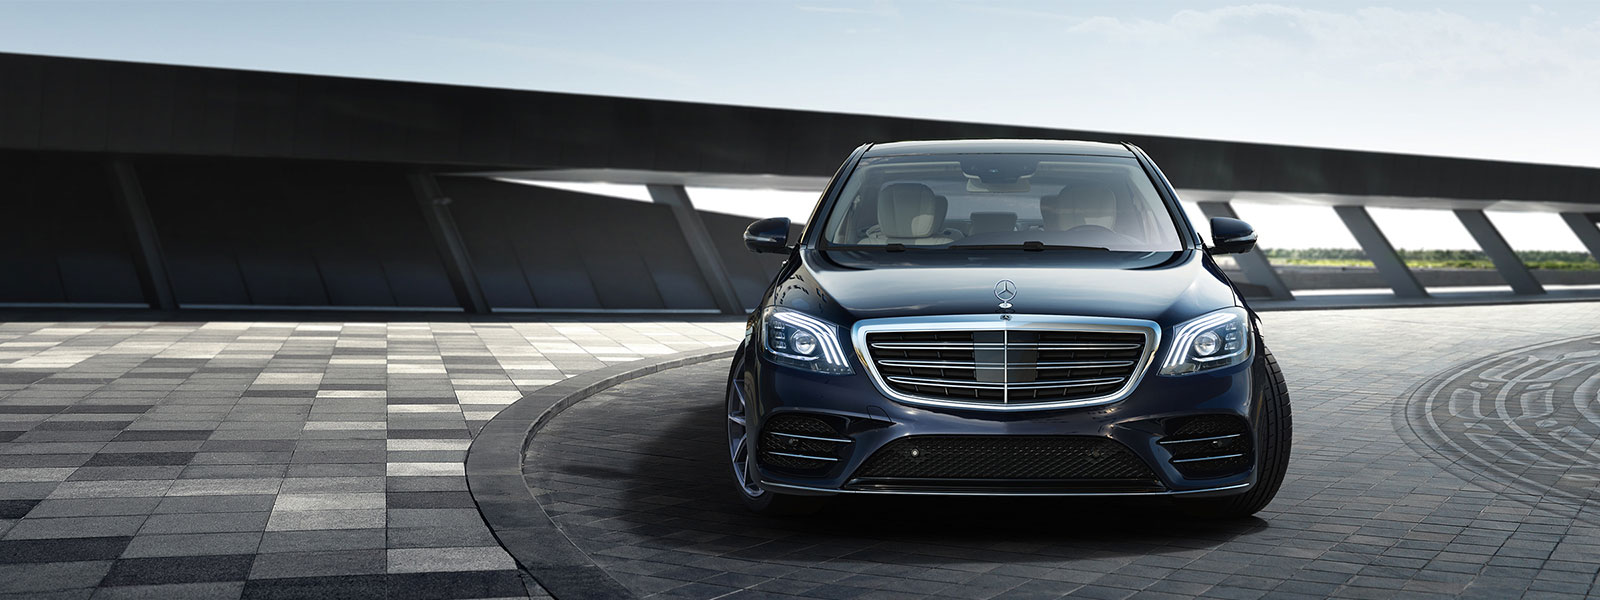 mercedes-s-class-rental-car-miami-beach-florida